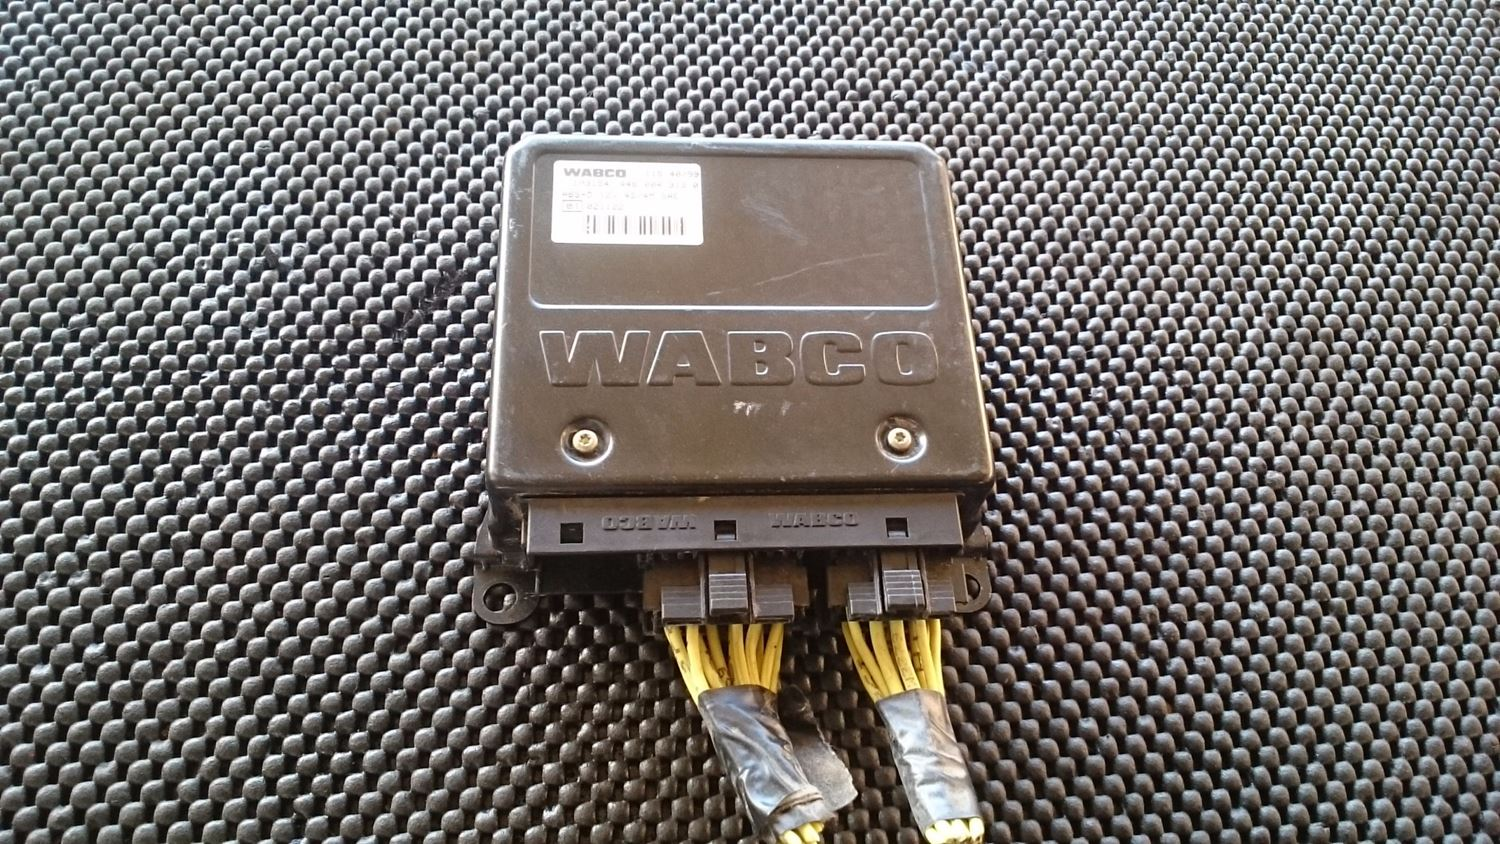 wabco abs wiring harness wabco image wiring diagram abs control modules new and used parts american truck chrome on wabco abs wiring harness